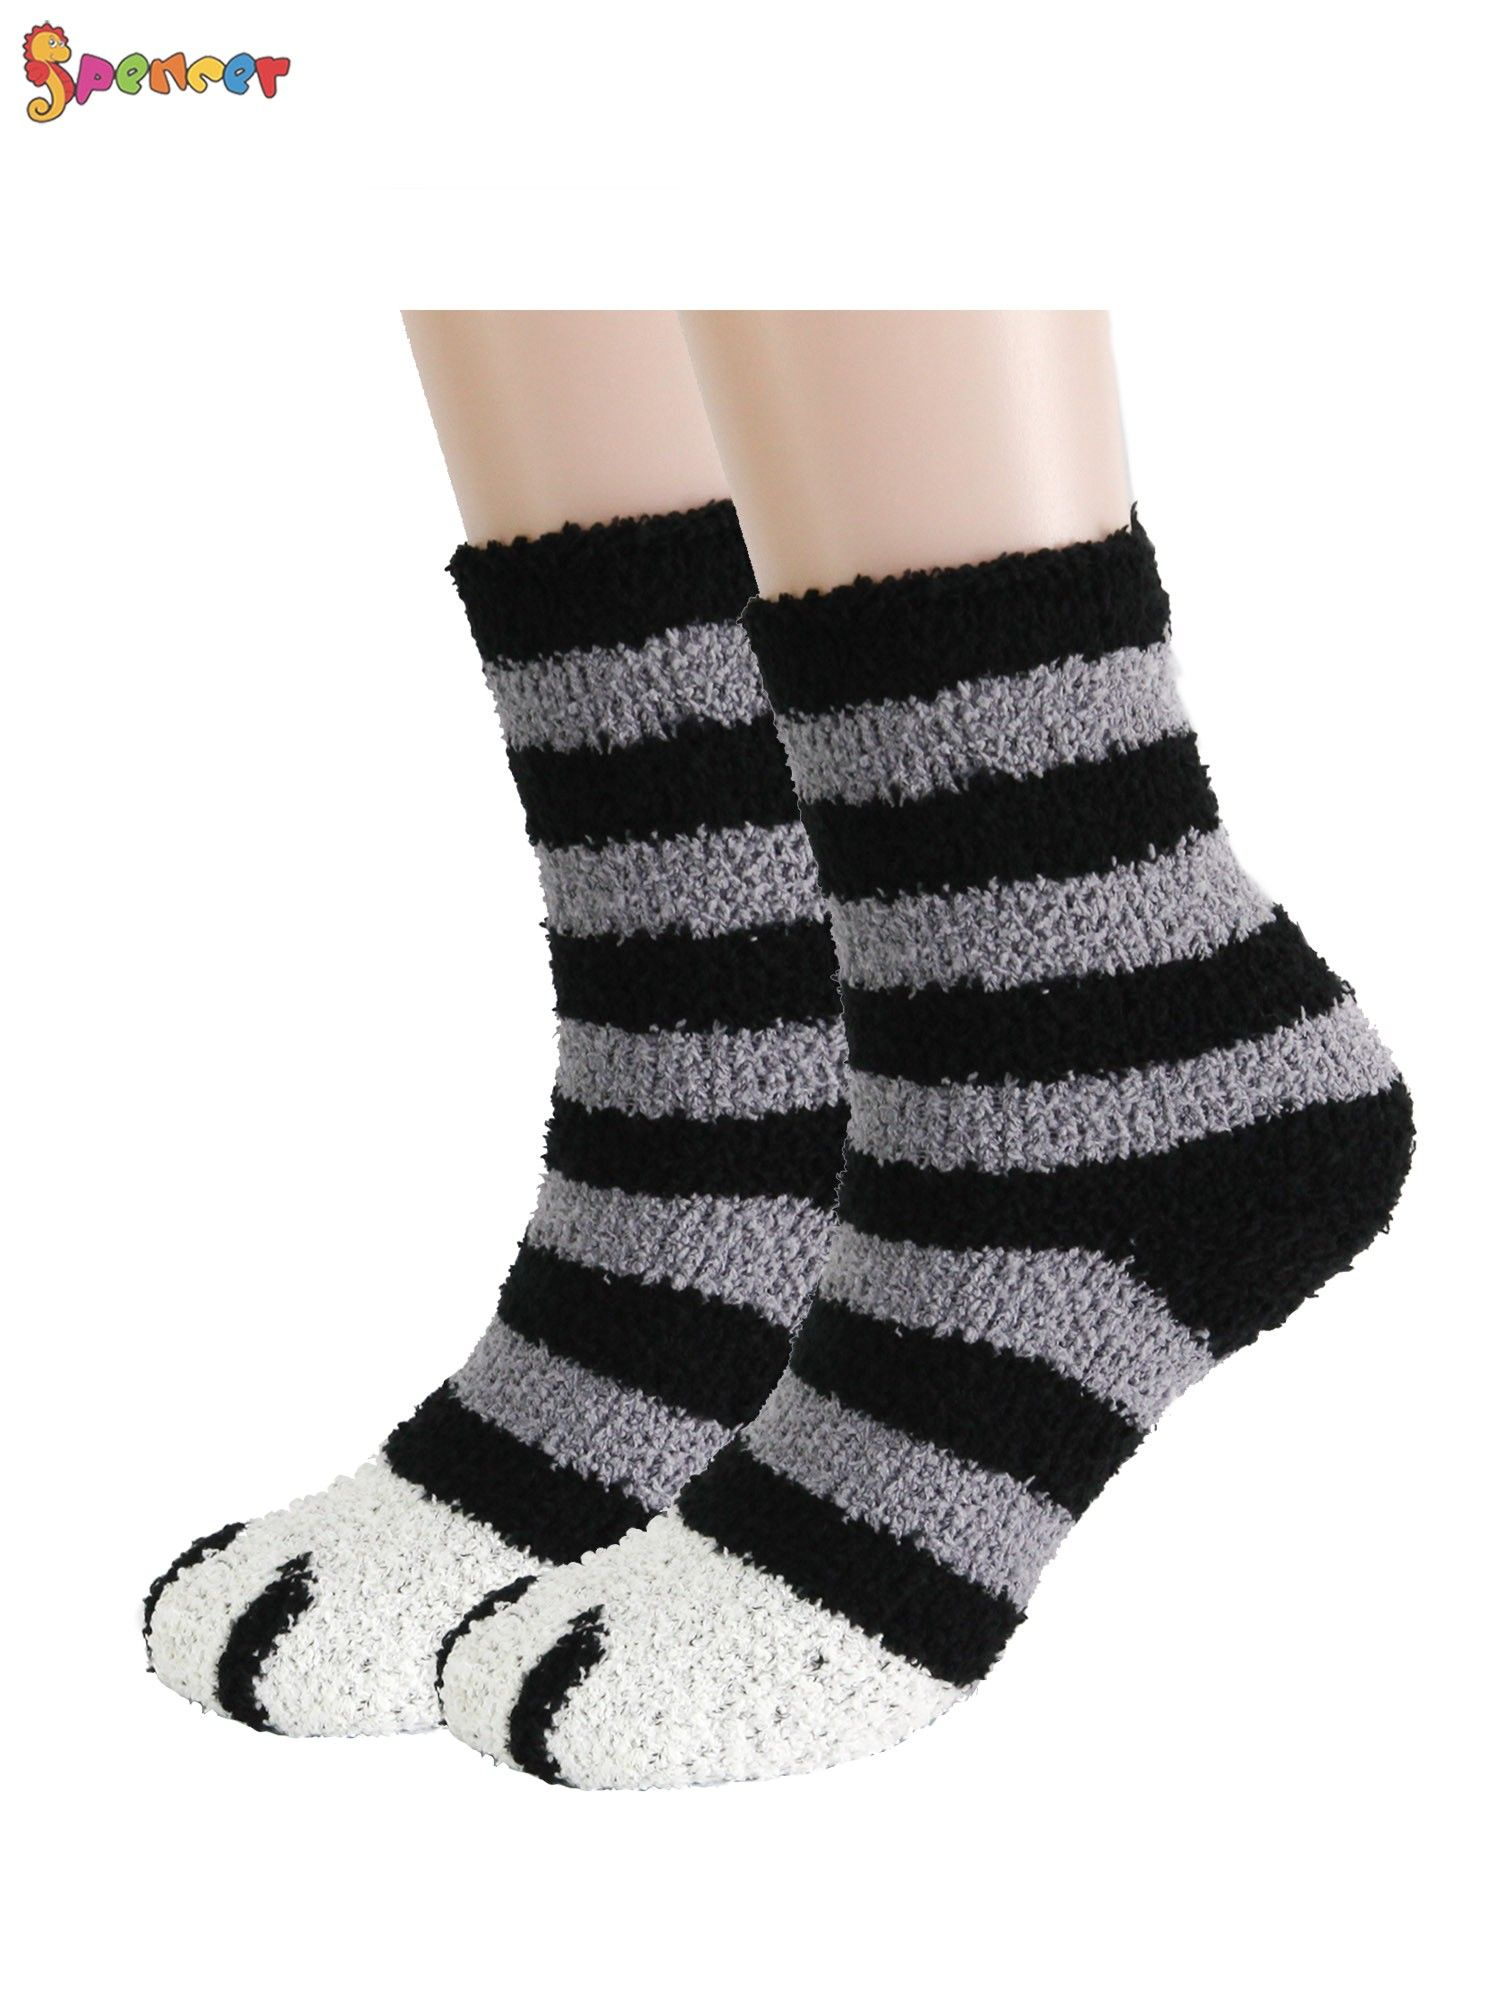 Casual winter women socks warm socks Vintage fleece socks Woollen sock For Boot women christmas gift